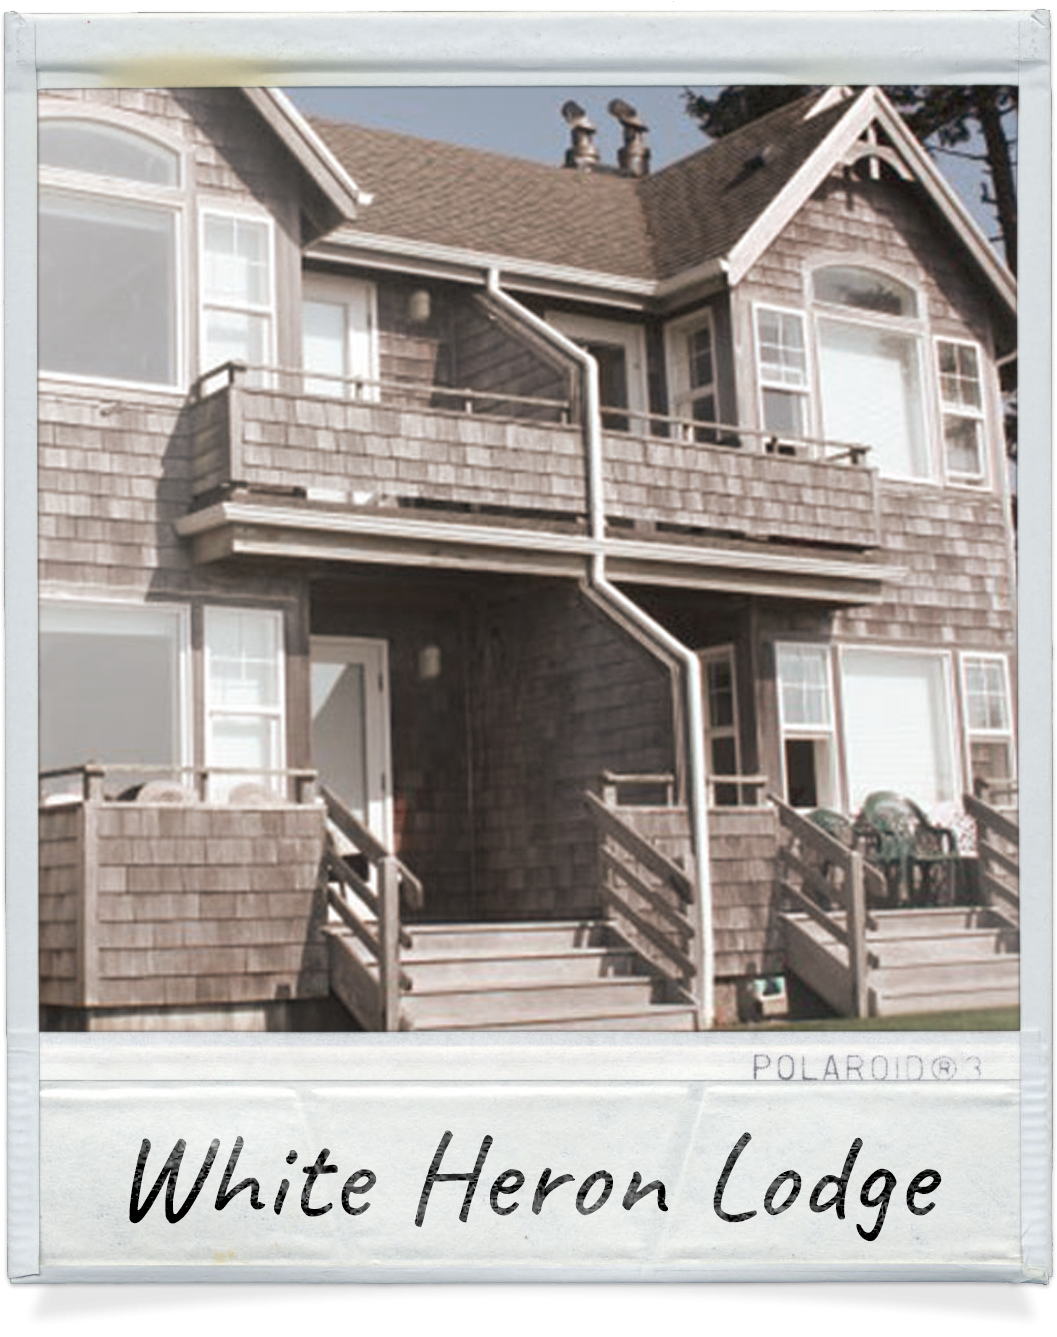 White Heron Lodge